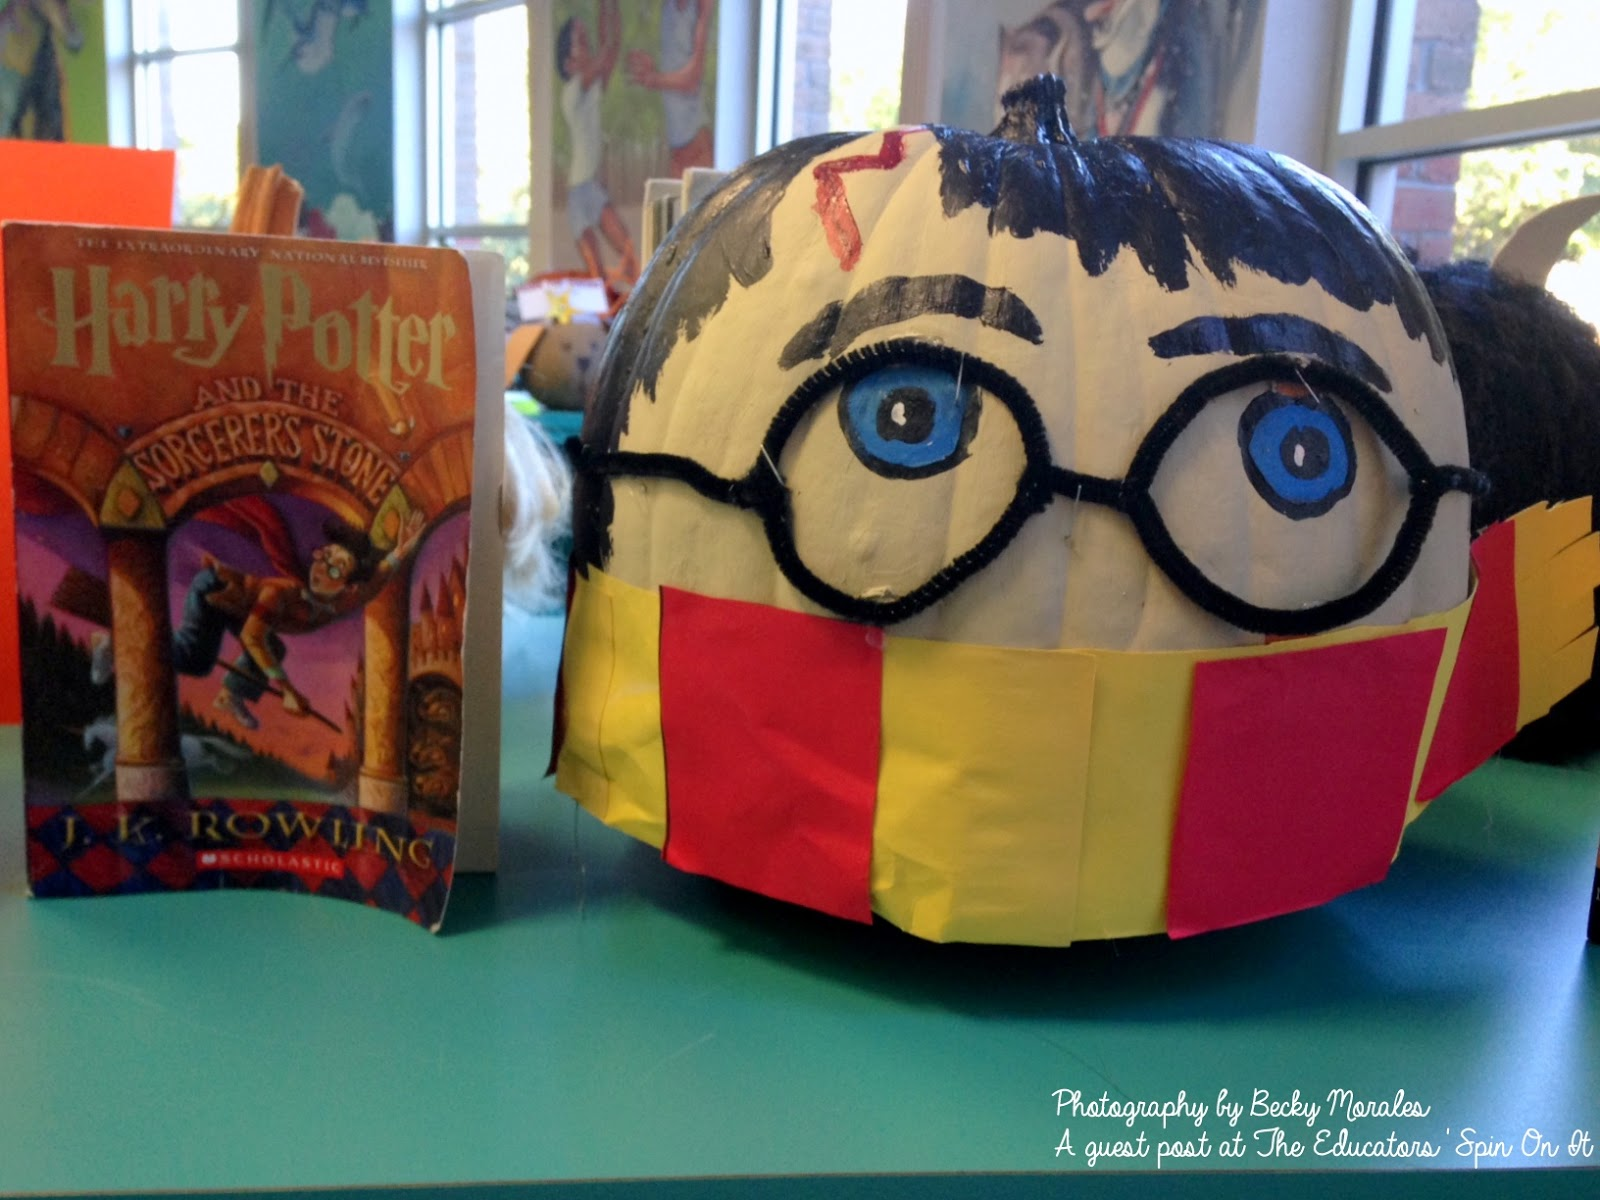 12 kids made storybook pumpkin ideas for halloween literacy rh theeducatorsspinonit com